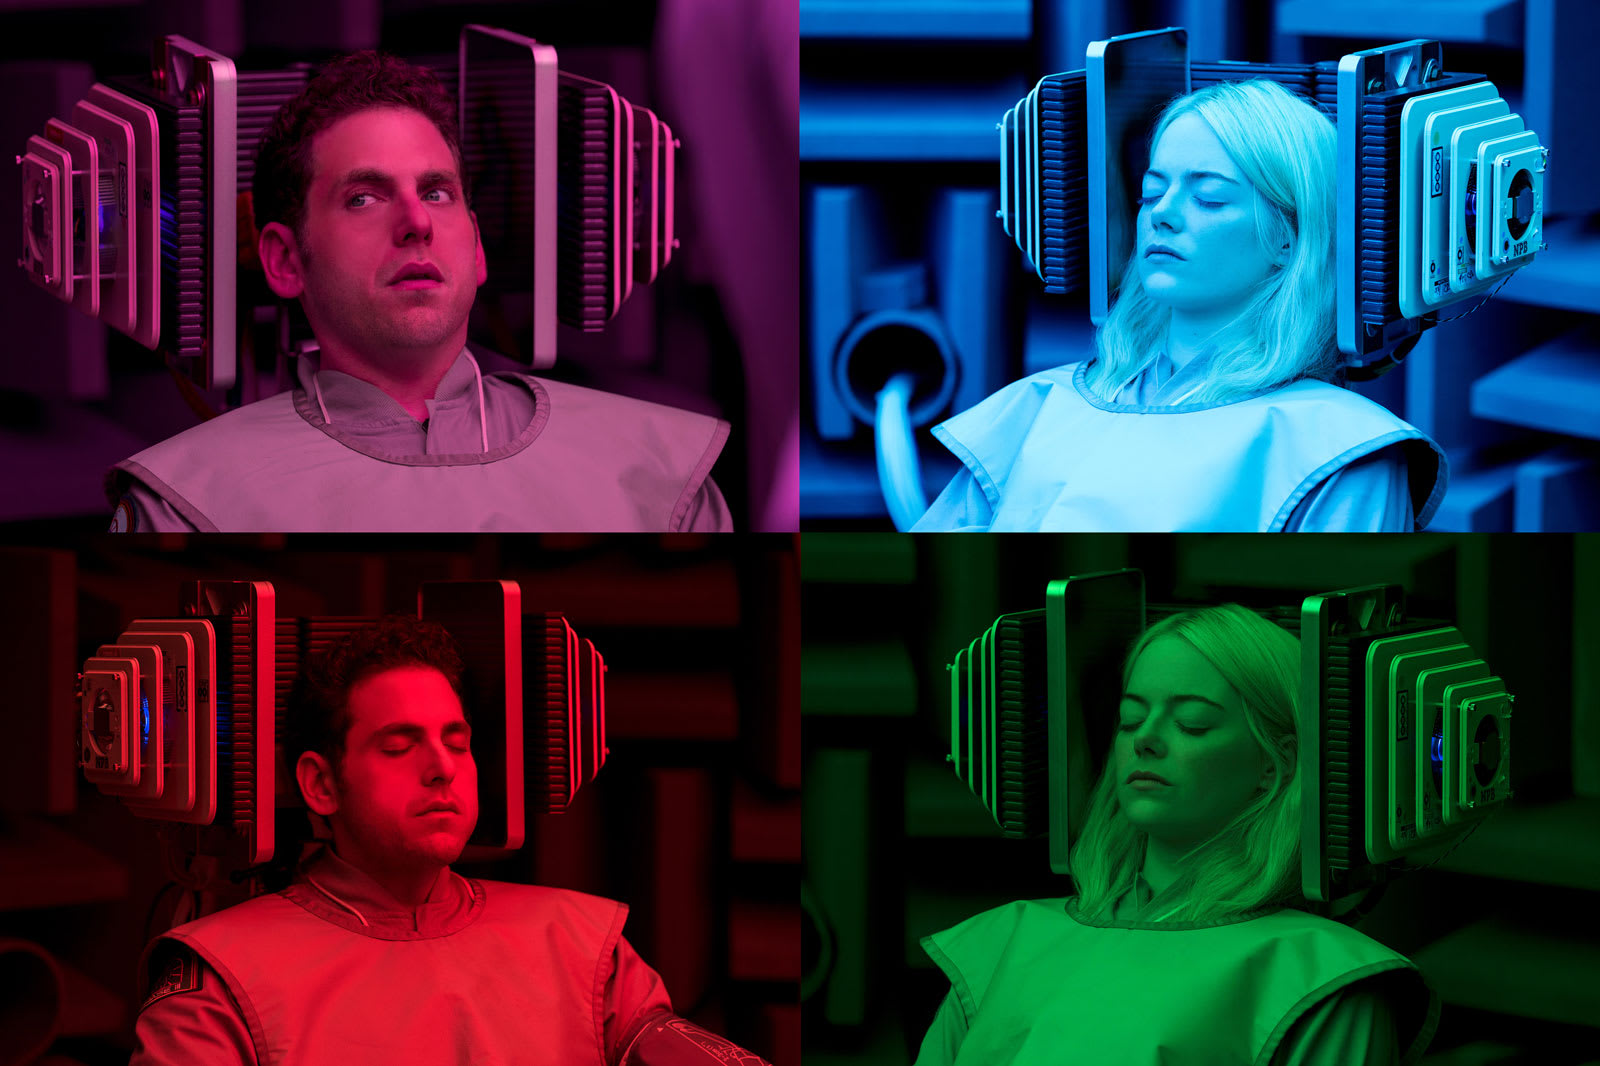 Netflix trailer for 'Maniac' shows a drug trial gone off the